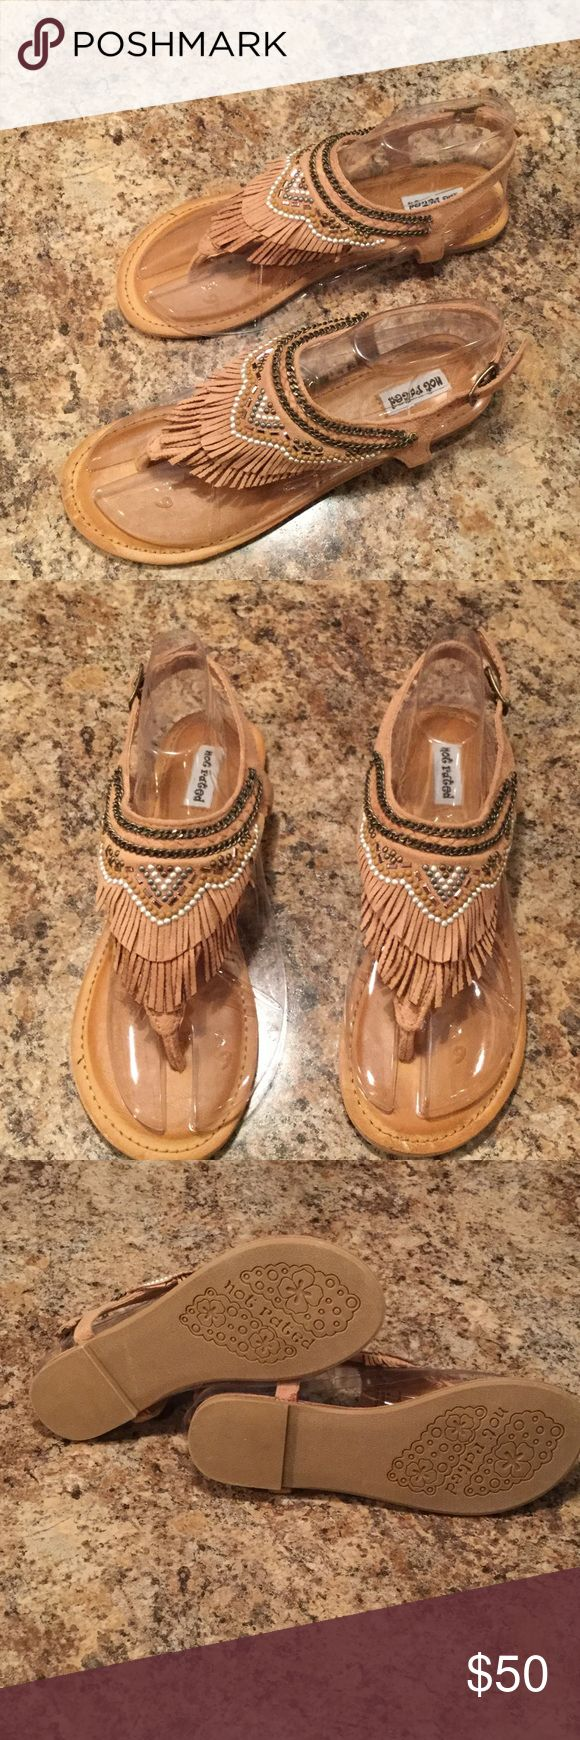 "Not Rated gladiator flat sandal Not Rated gladiator inspired flat tan sandal. Fringe studded thong strap with buckle closure at ankle. Heel 0.5"". Size 7.5. NWT. Super Cute for any occasion - dress them up or wear them any casual day. Any questions or want more pictures? Just ask! Not Rated Shoes Sandals"